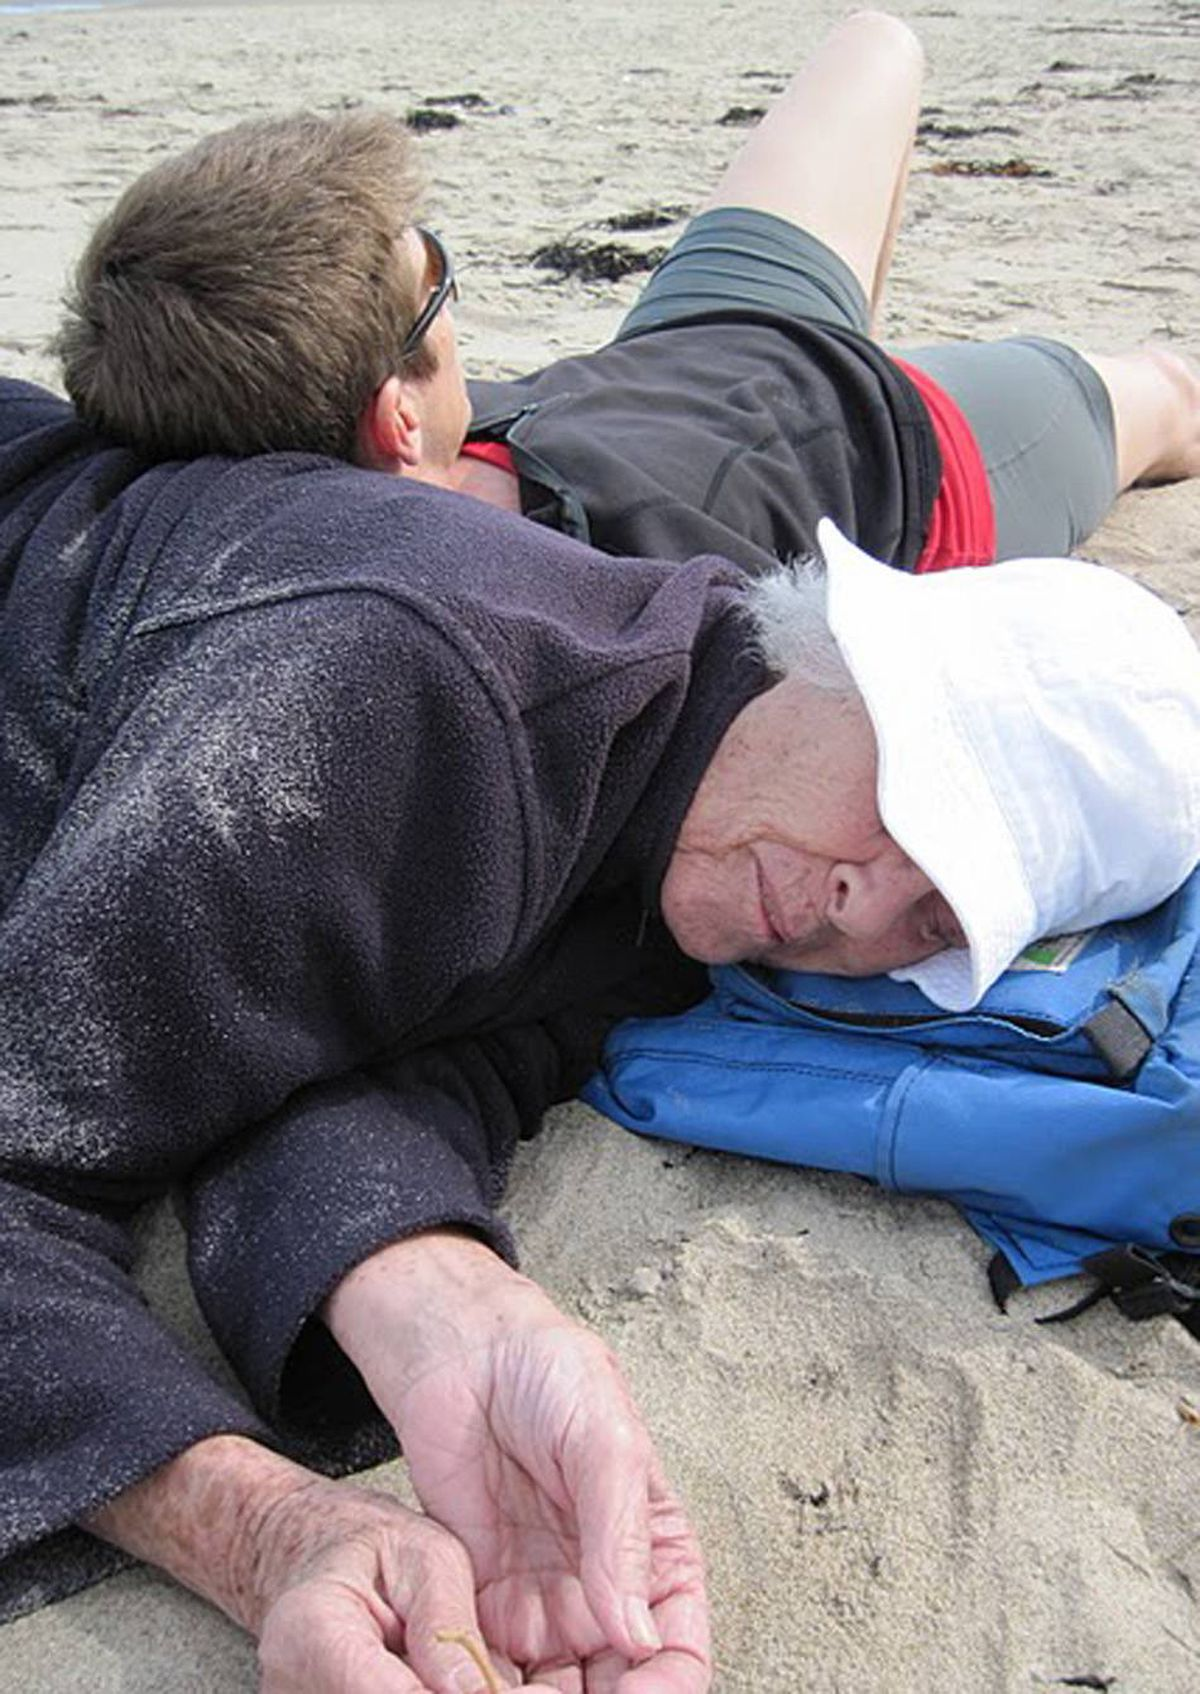 his photo was taken on Ogunquit Beach in Maine in May 2010 on my mom's 85th birthday. It truly symbolizes the love and the physical closeness we shared for 50 years, for which I am so grateful.